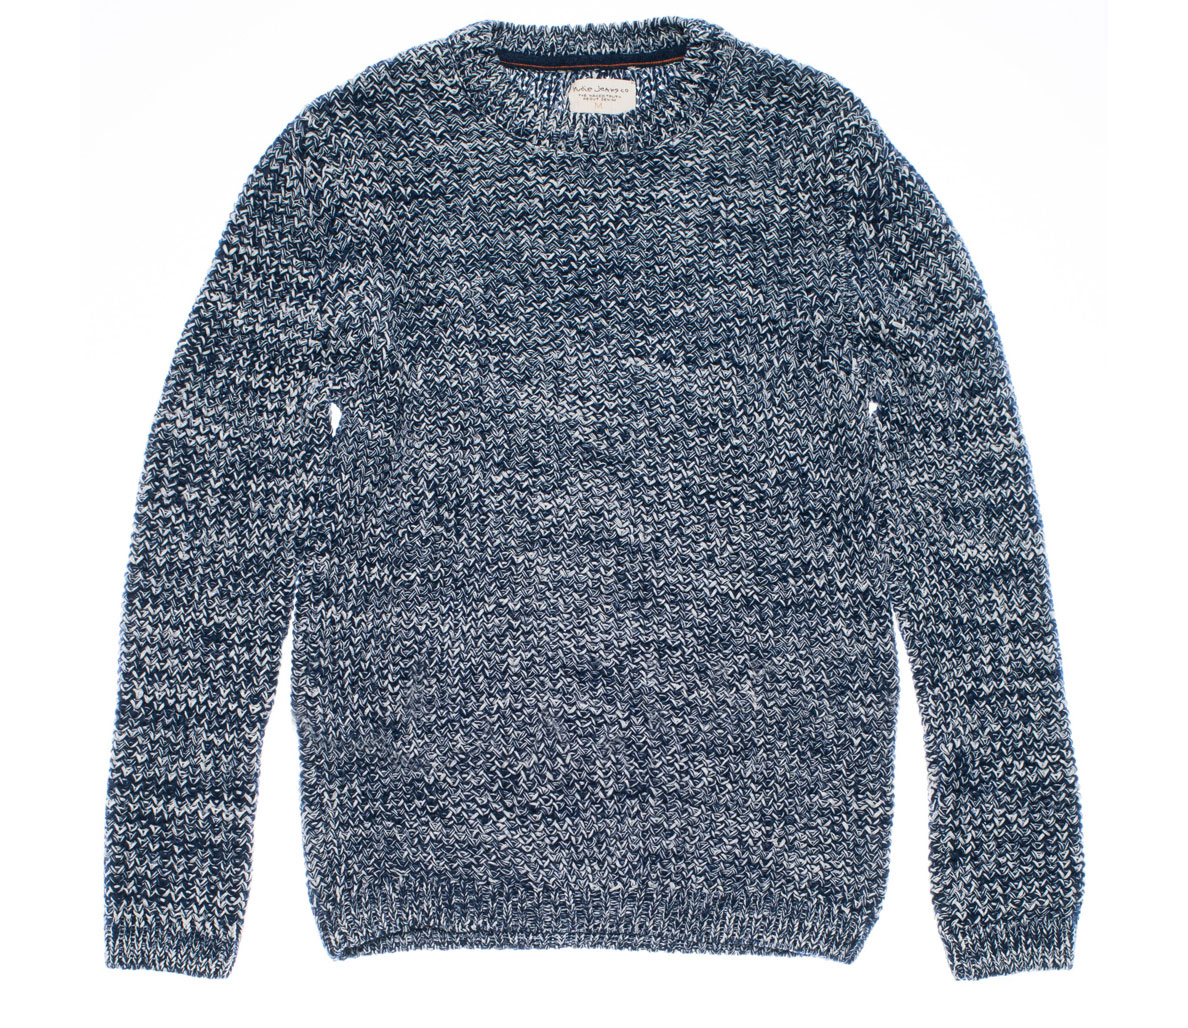 15 Lightweight Sweaters For Men 534e517dd